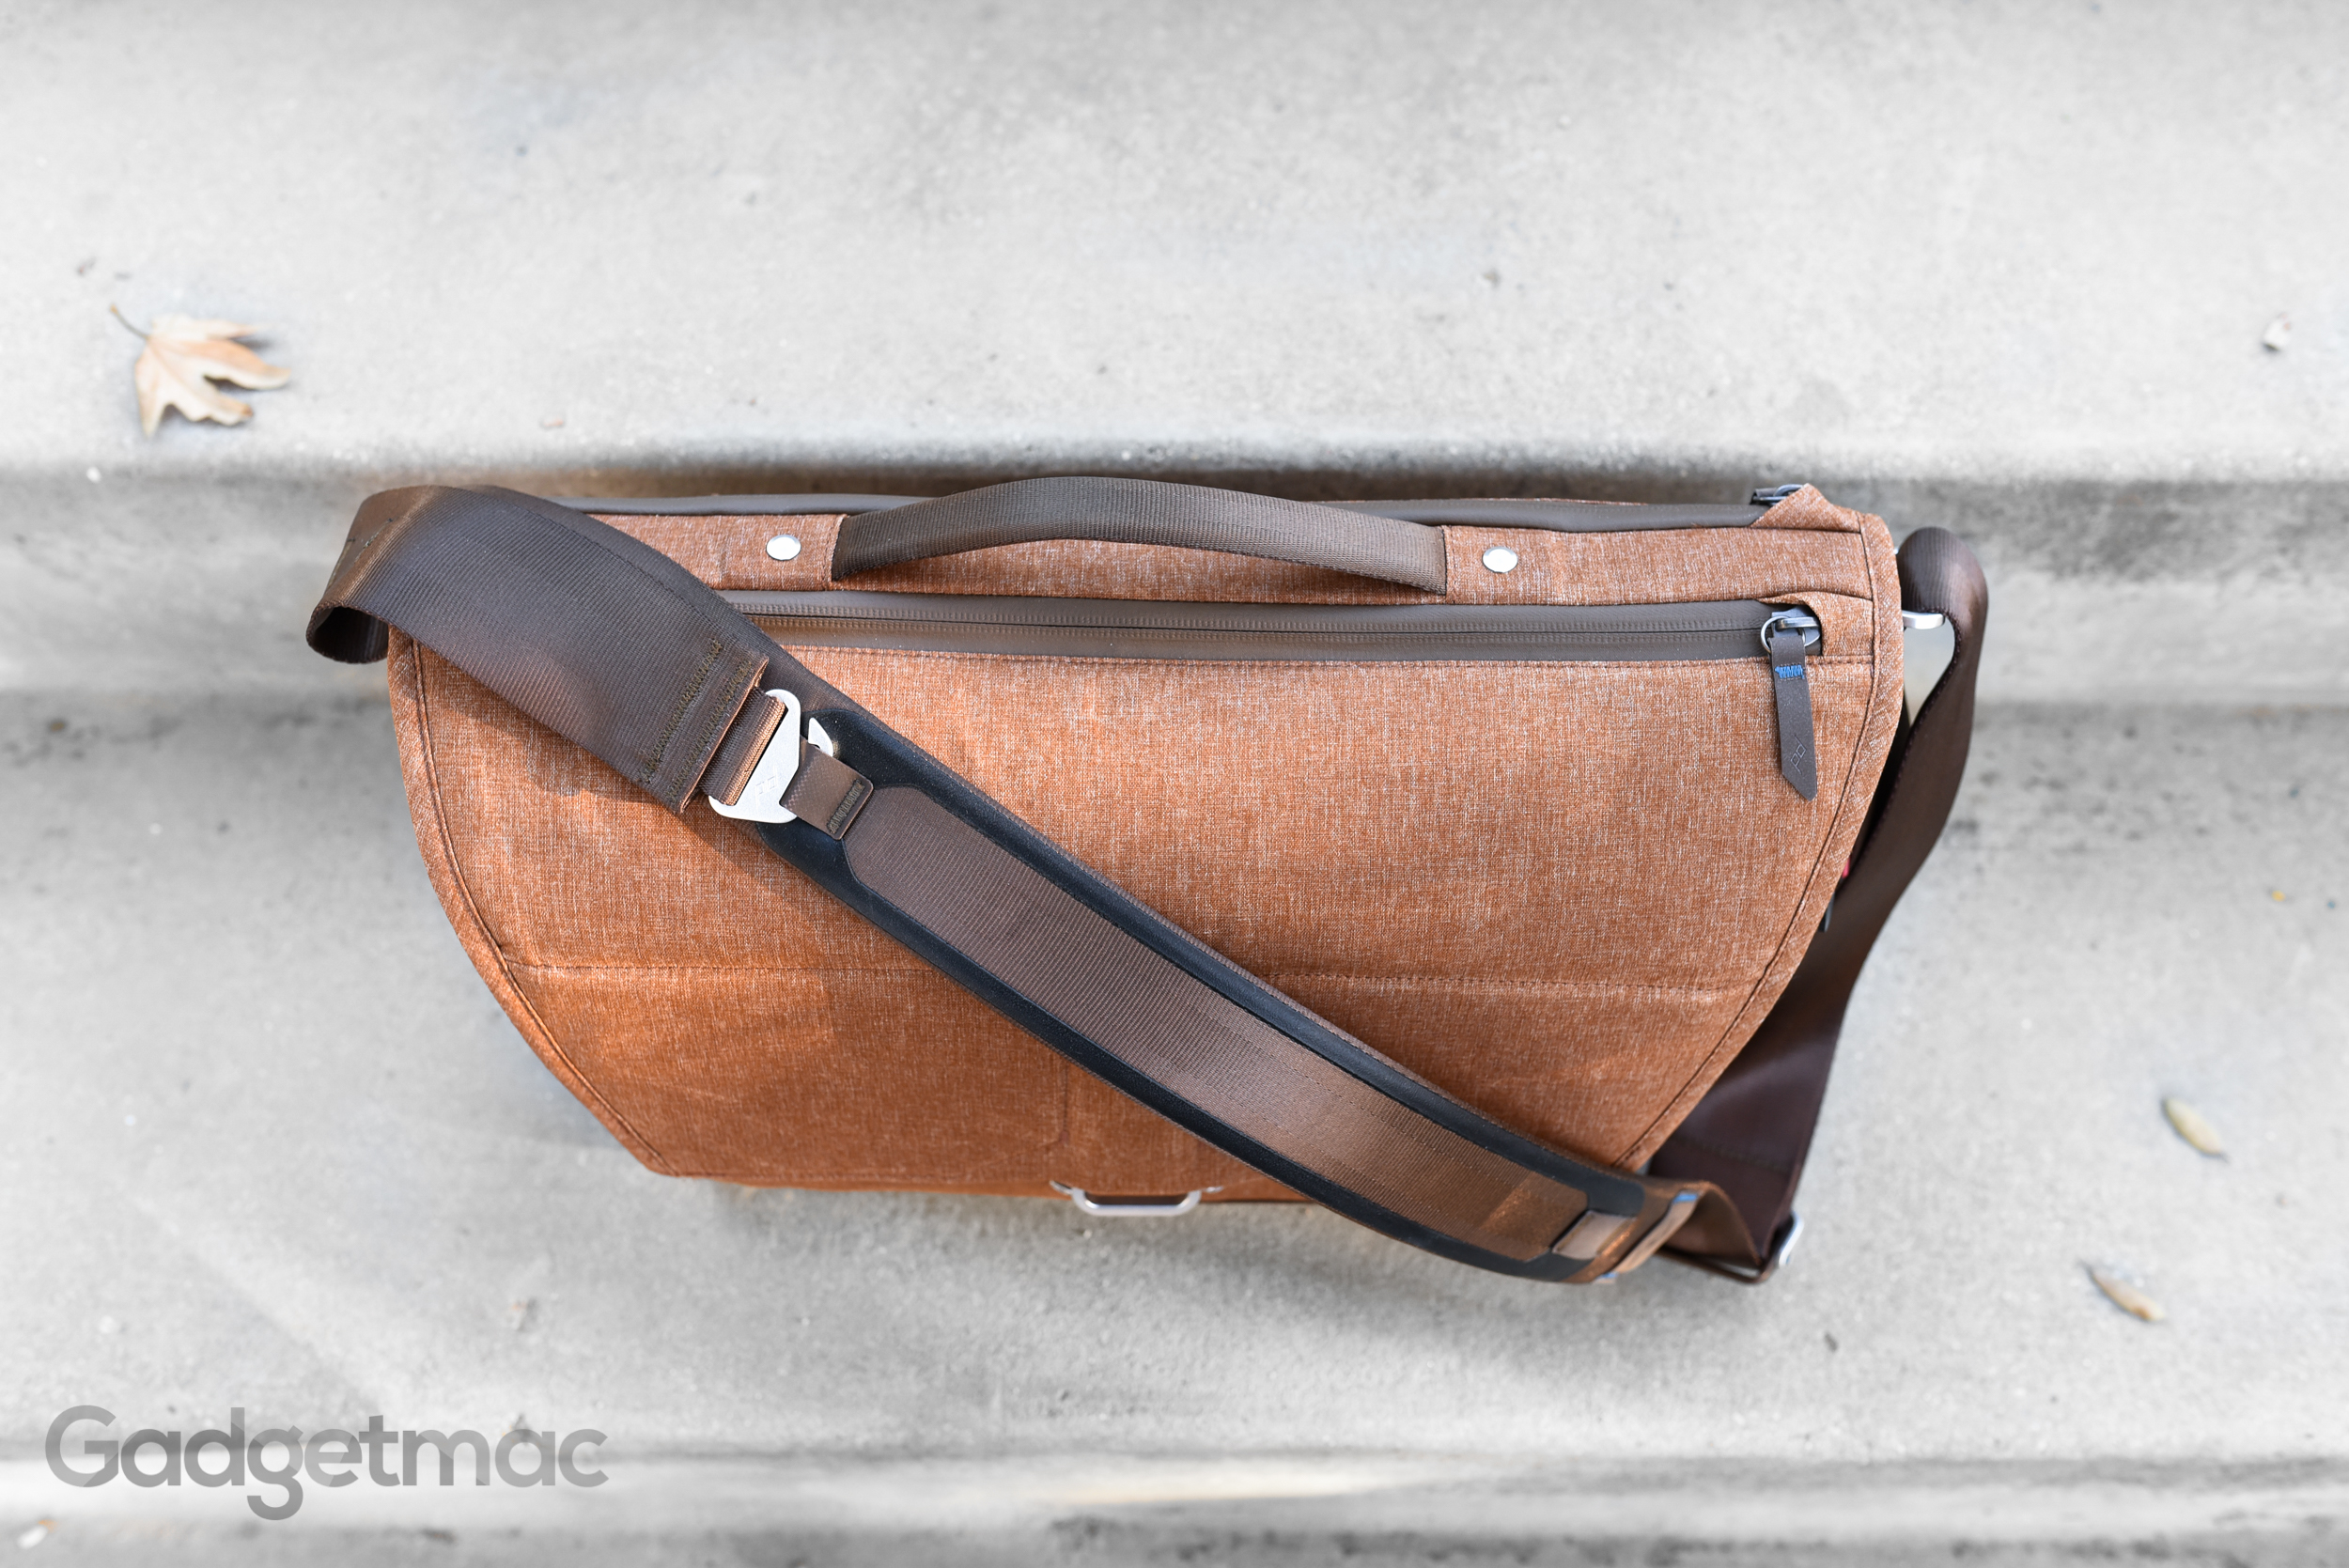 peak-design-everyday-messenger-bag-top.jpg